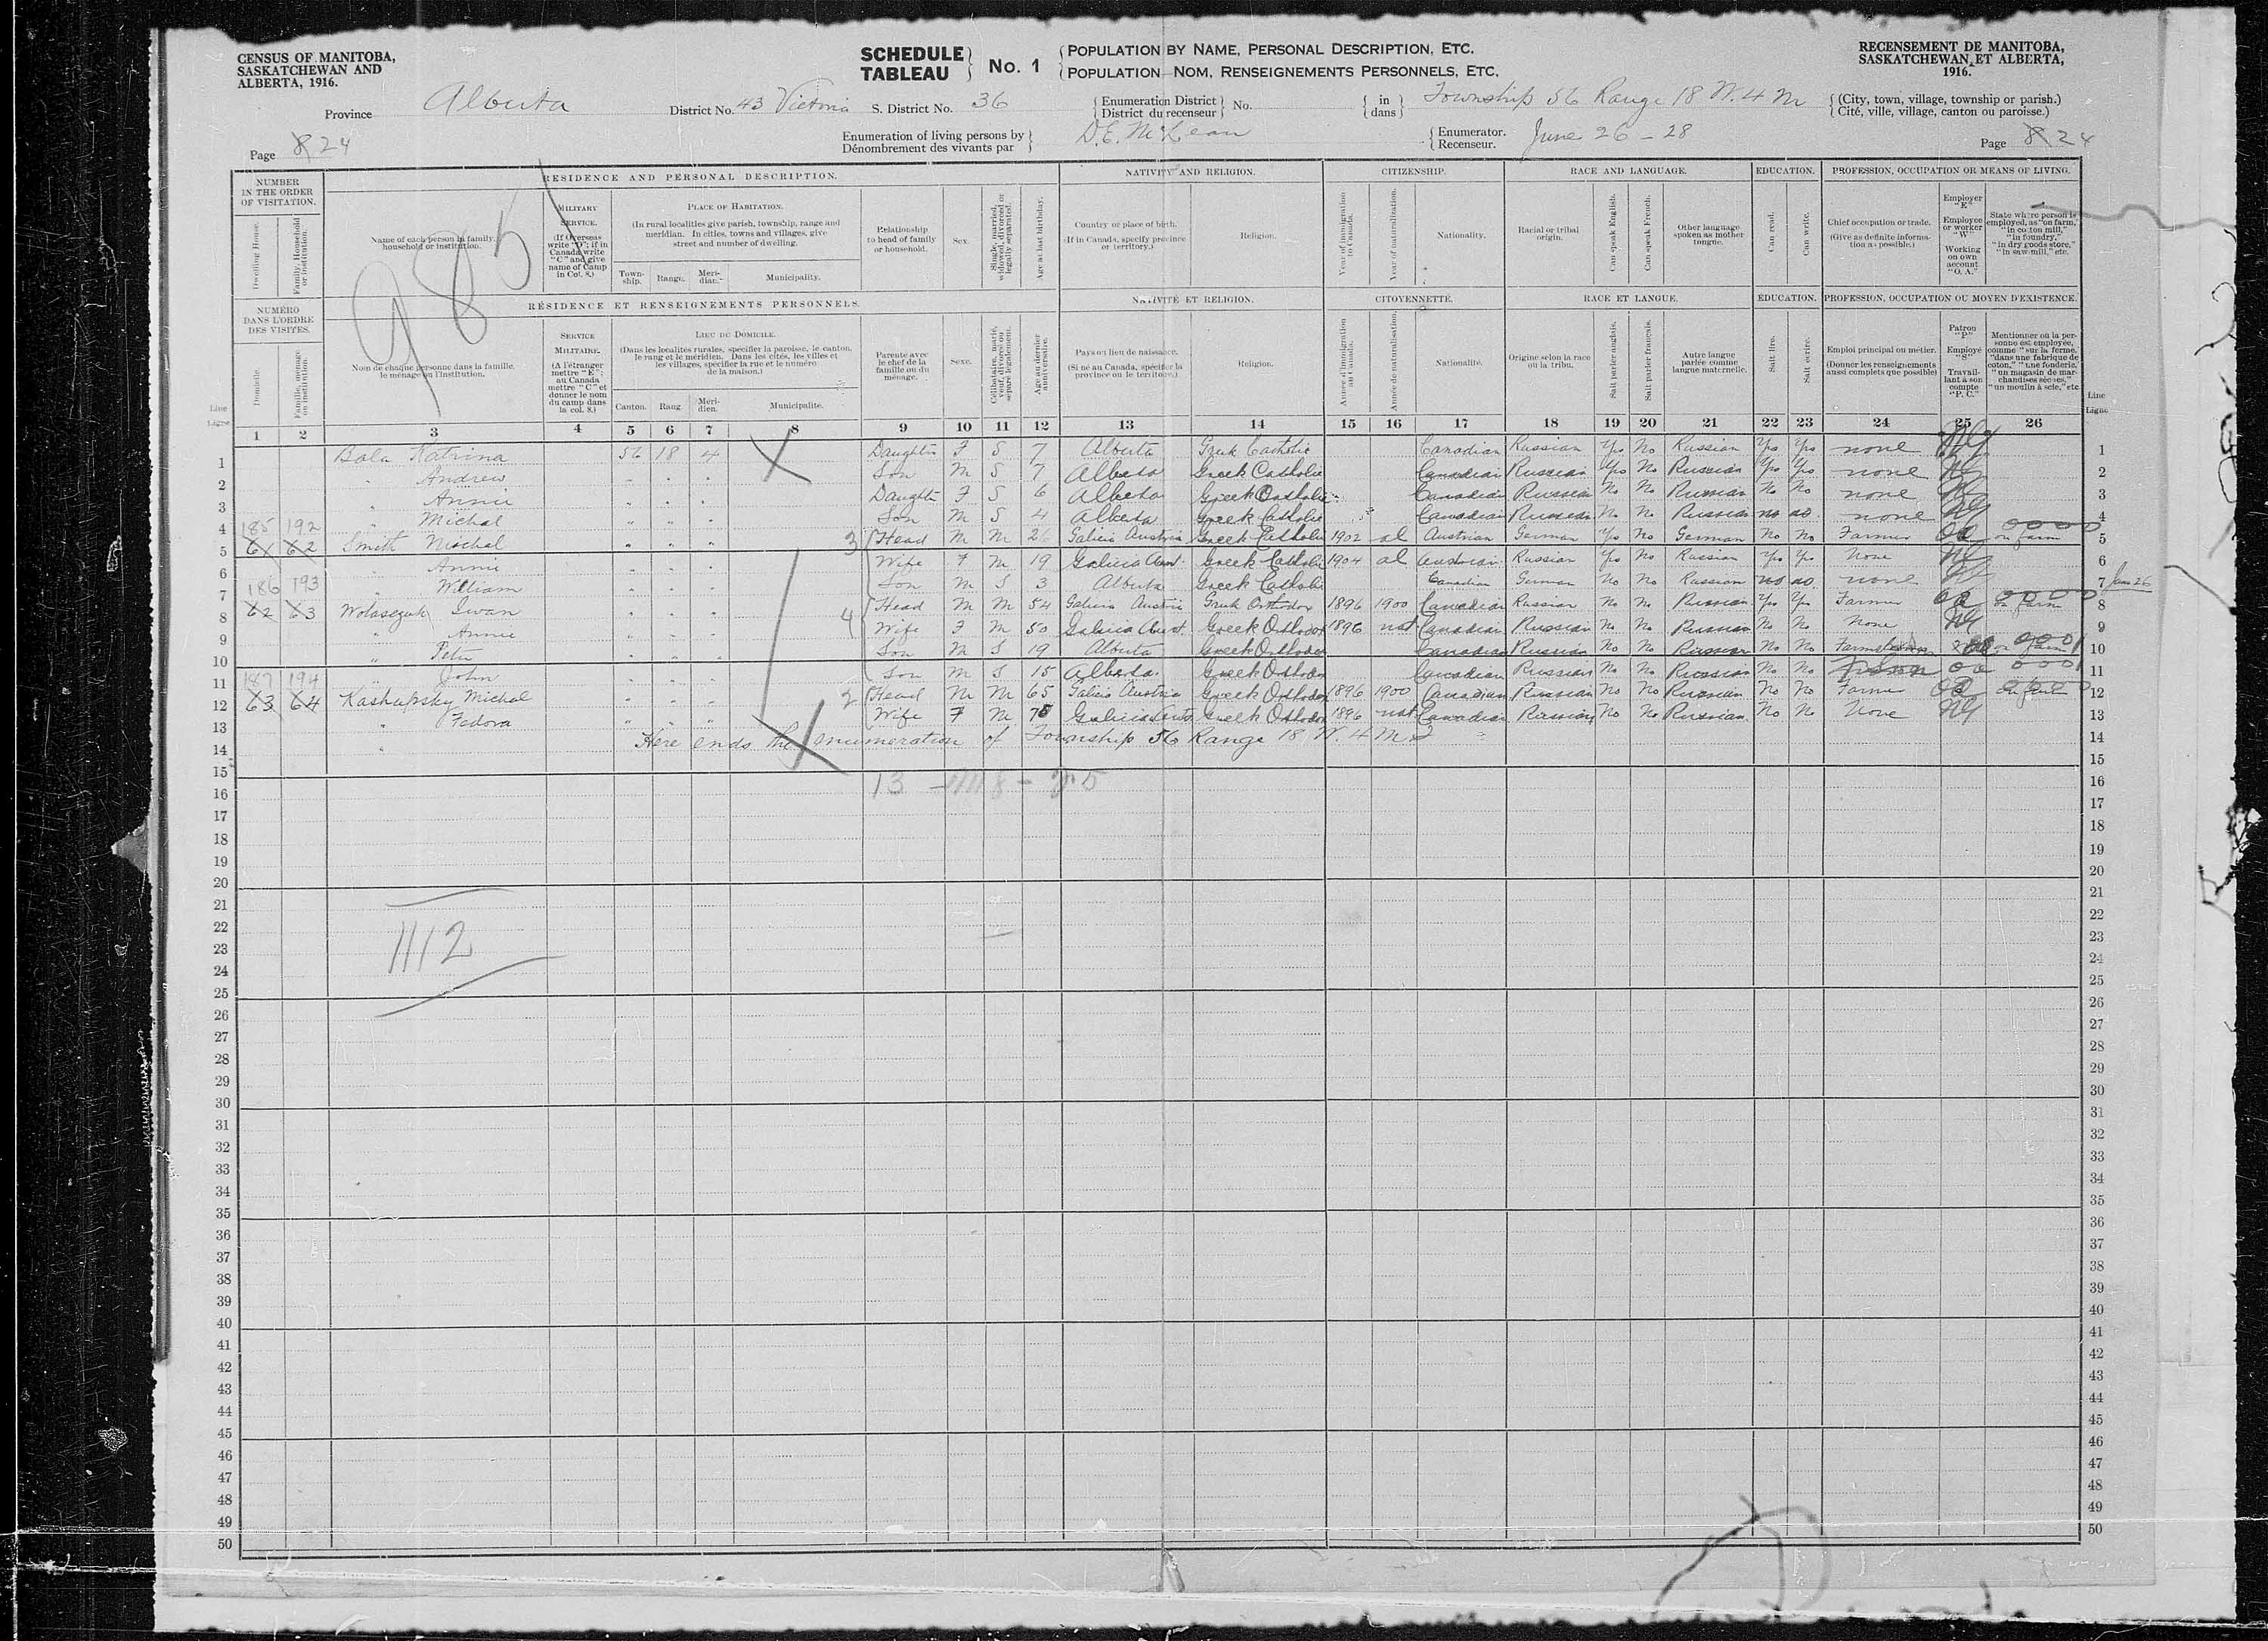 Title: Census of the Prairie Provinces, 1916 - Mikan Number: 3800575 - Microform: t-21955